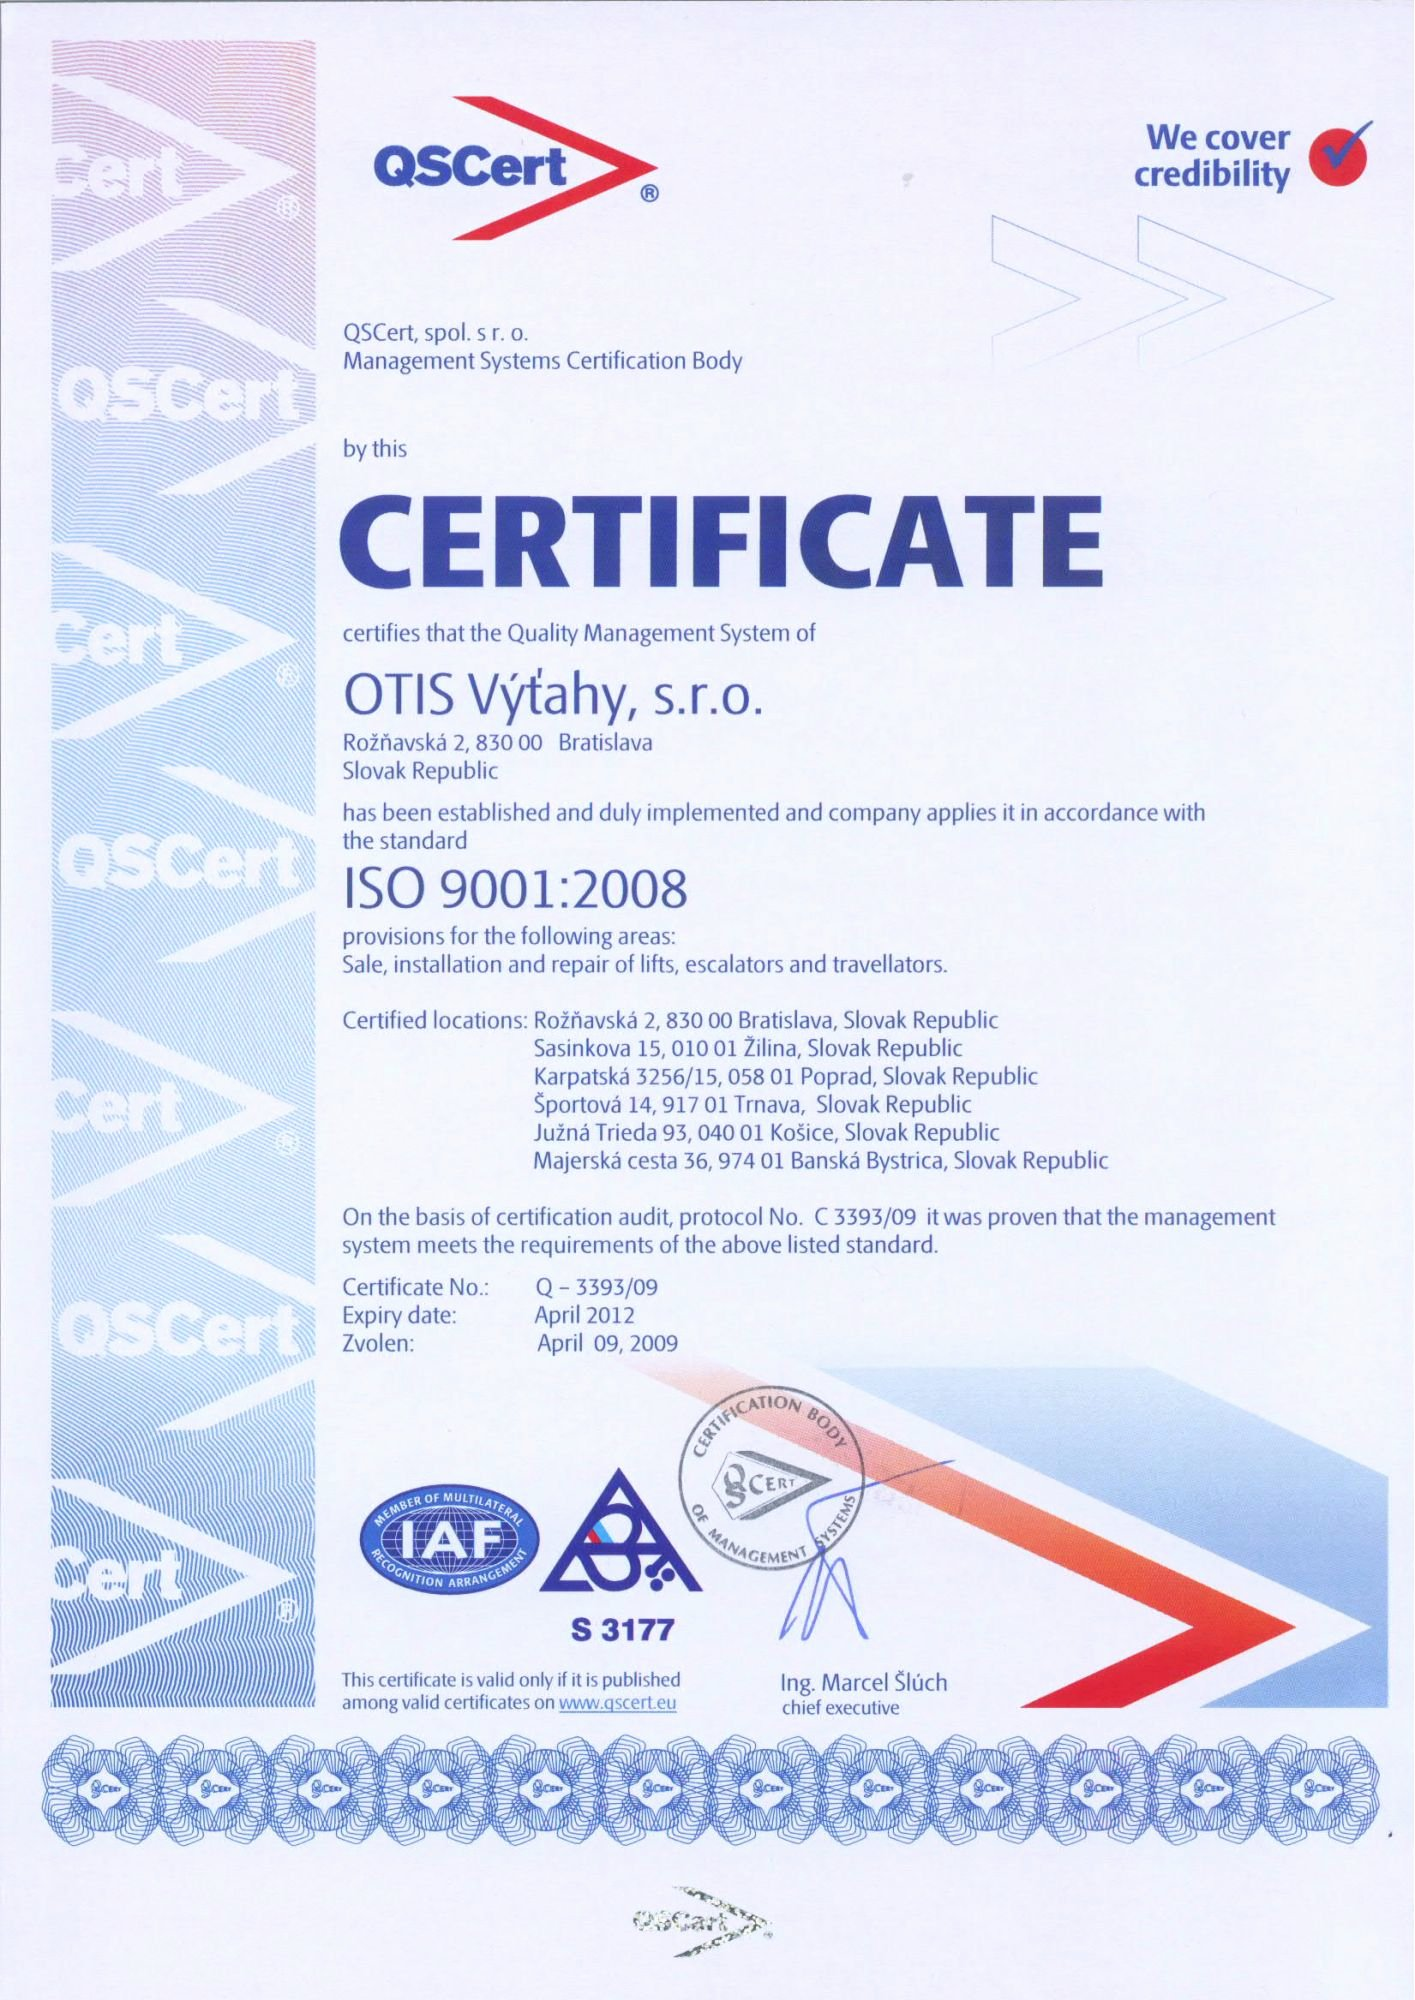 Certificate Of Quality Template Inspirational iso 9001 Qscert